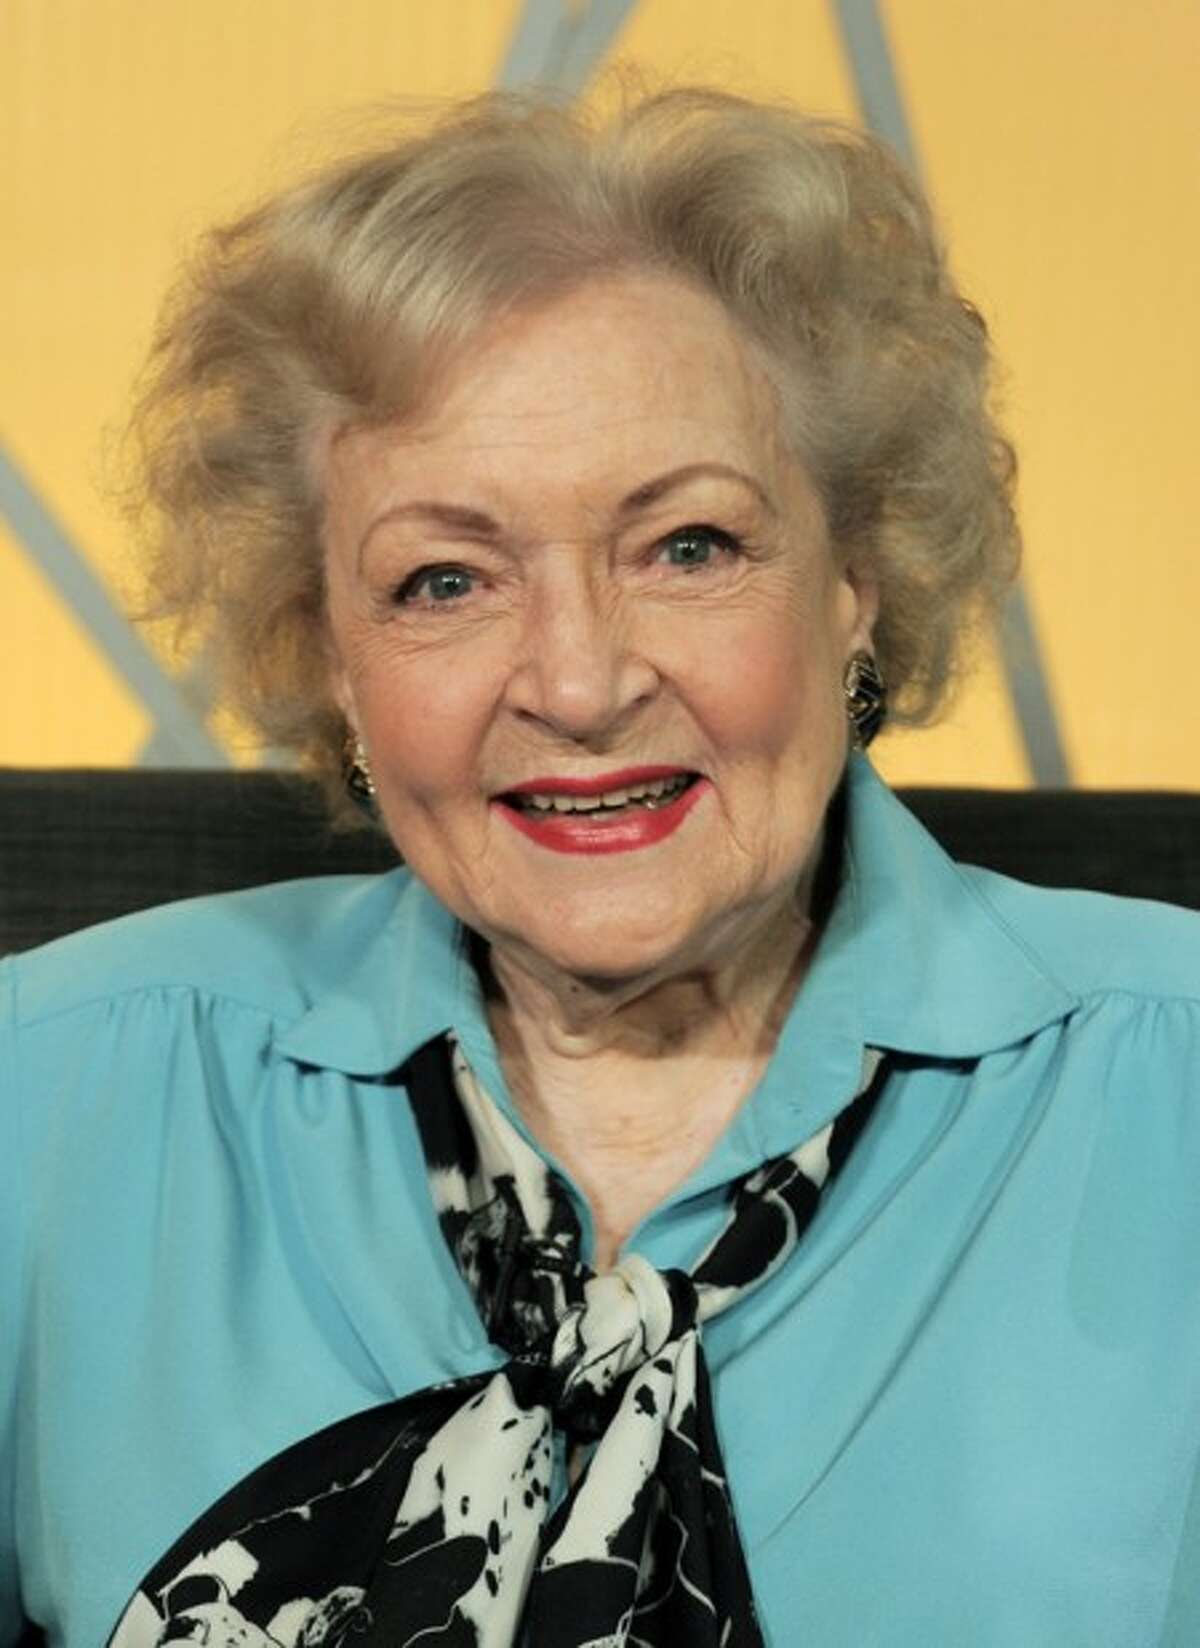 FILE - In this Nov. 29, 2009 file photo, actress Betty White poses for a portrait in Burbank, Calif. (AP Photo/Chris Pizzello, file)